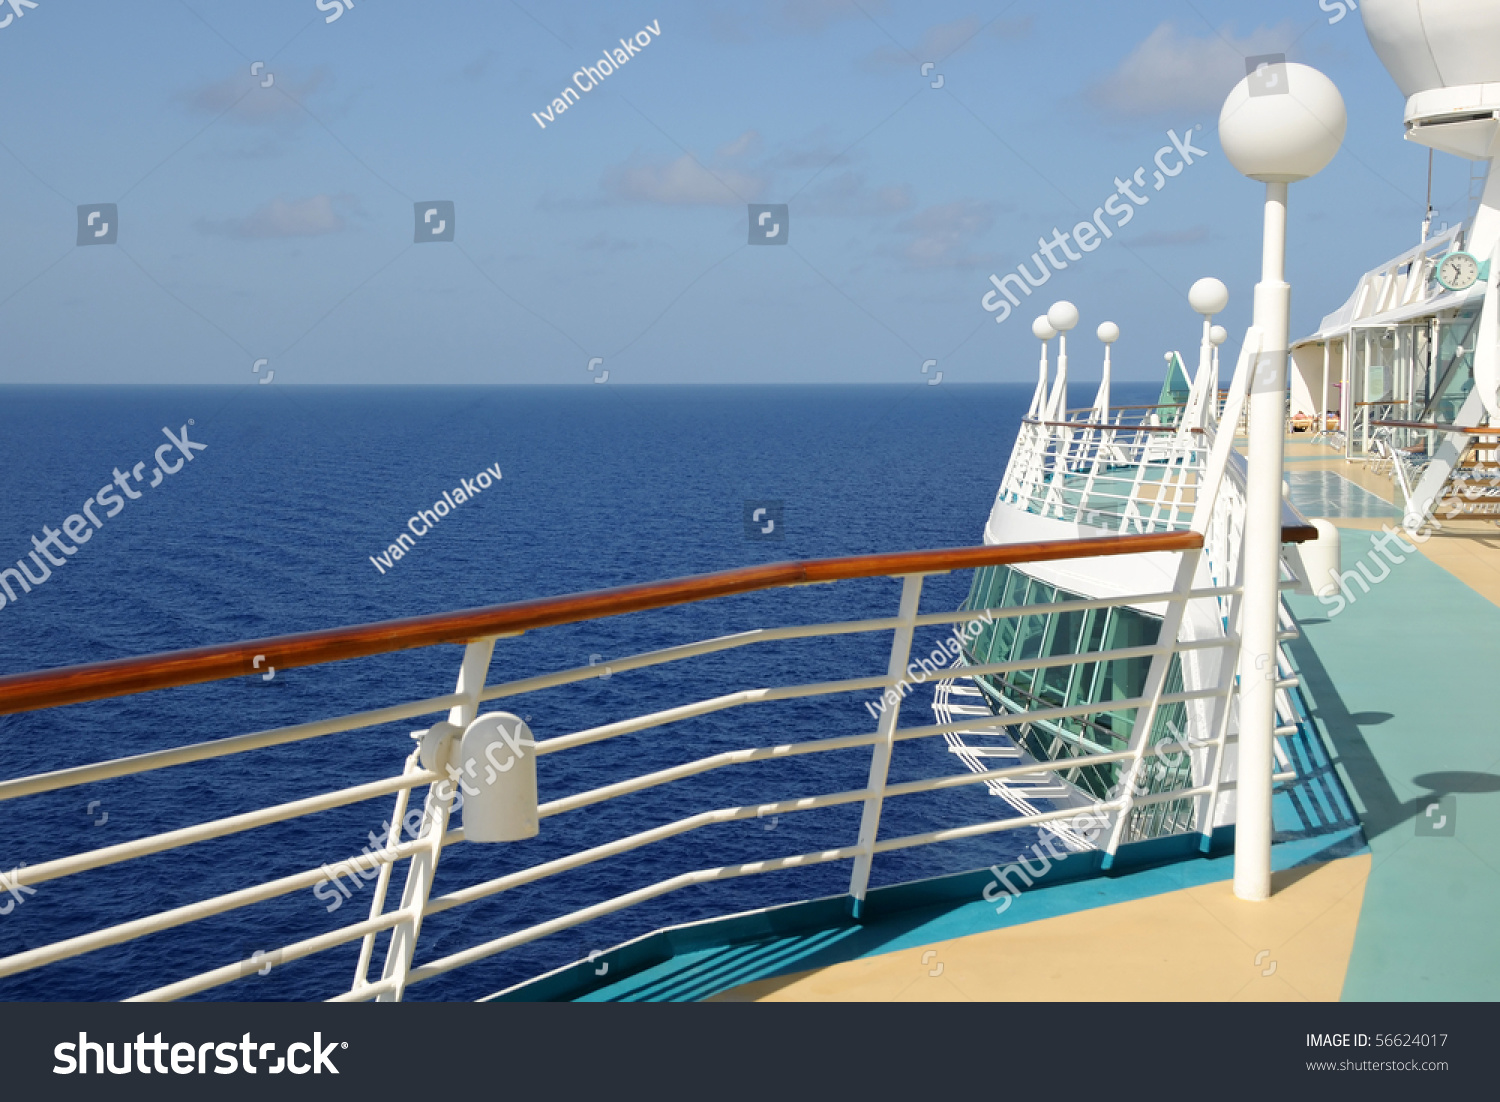 Sea horizon seen from a cruise ship balcony stock photo for Balcony in cruise ship